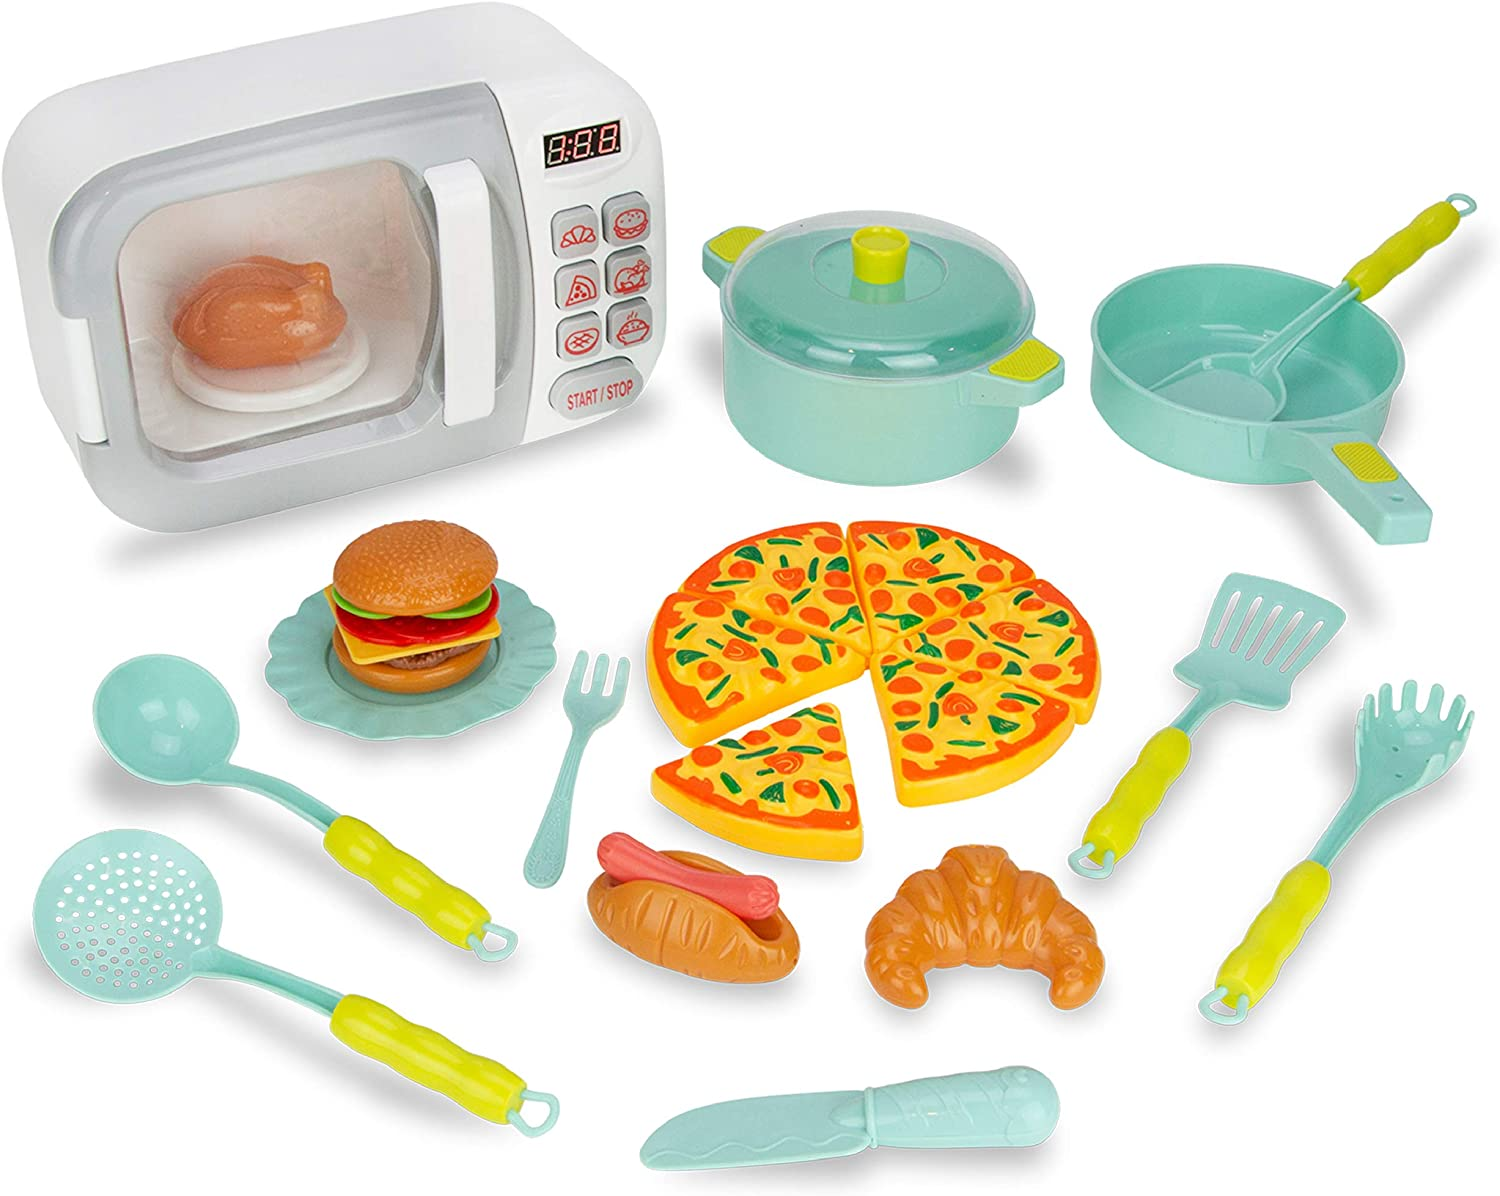 Boley Toy Microwave Playset - 26 Pc Light & Sound Oven w/ Play Kitchen Accessories for Kids Ages 3+